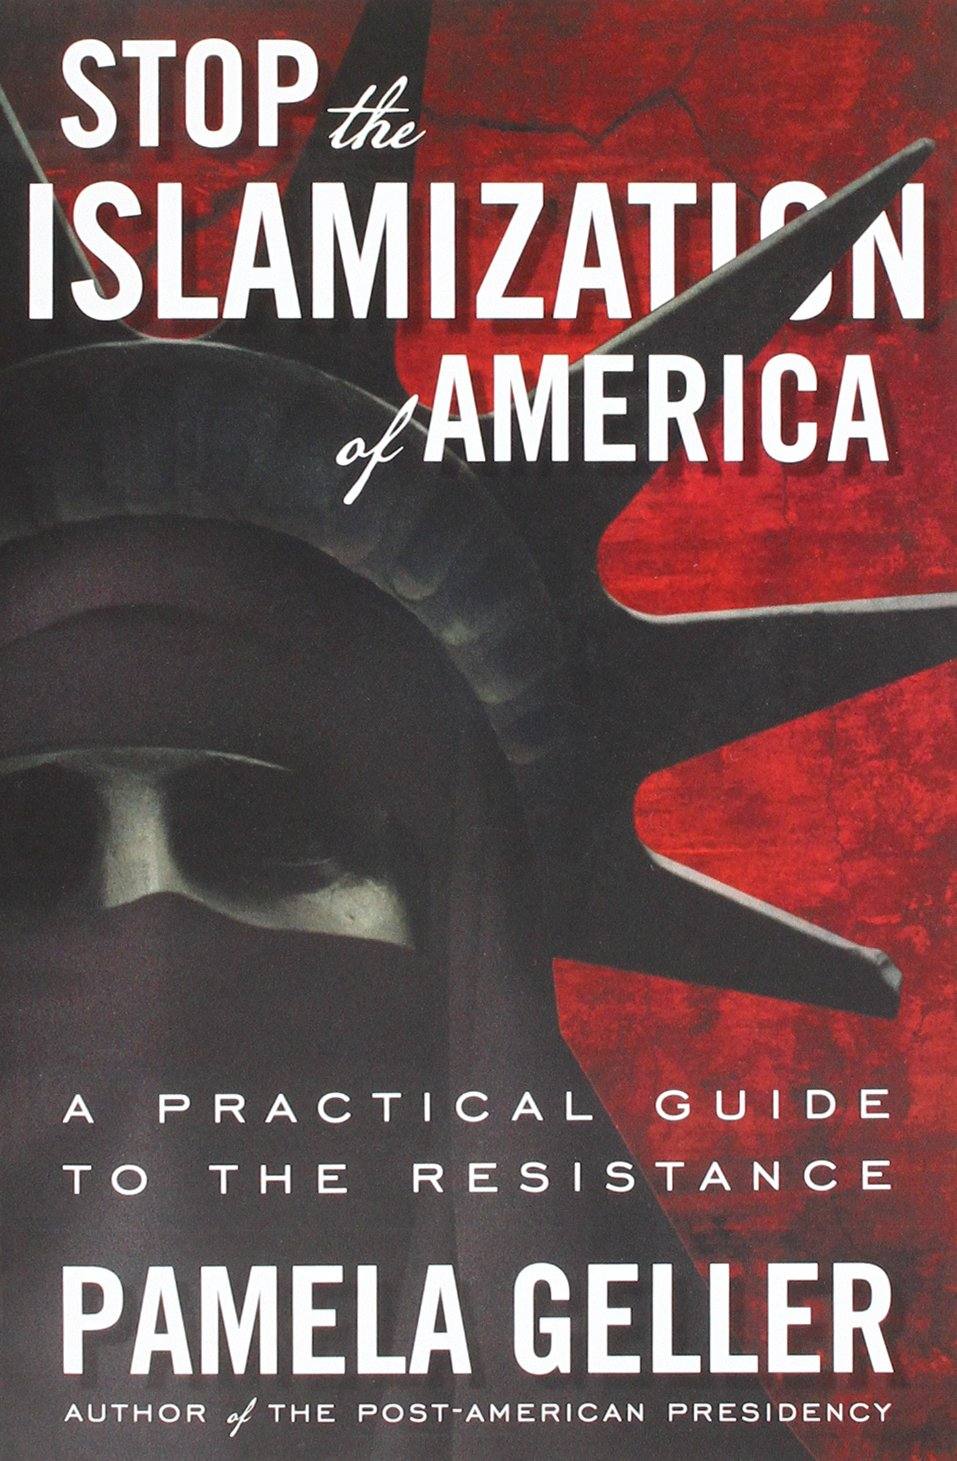 STOP THE ISLAMIZATION OF AMER